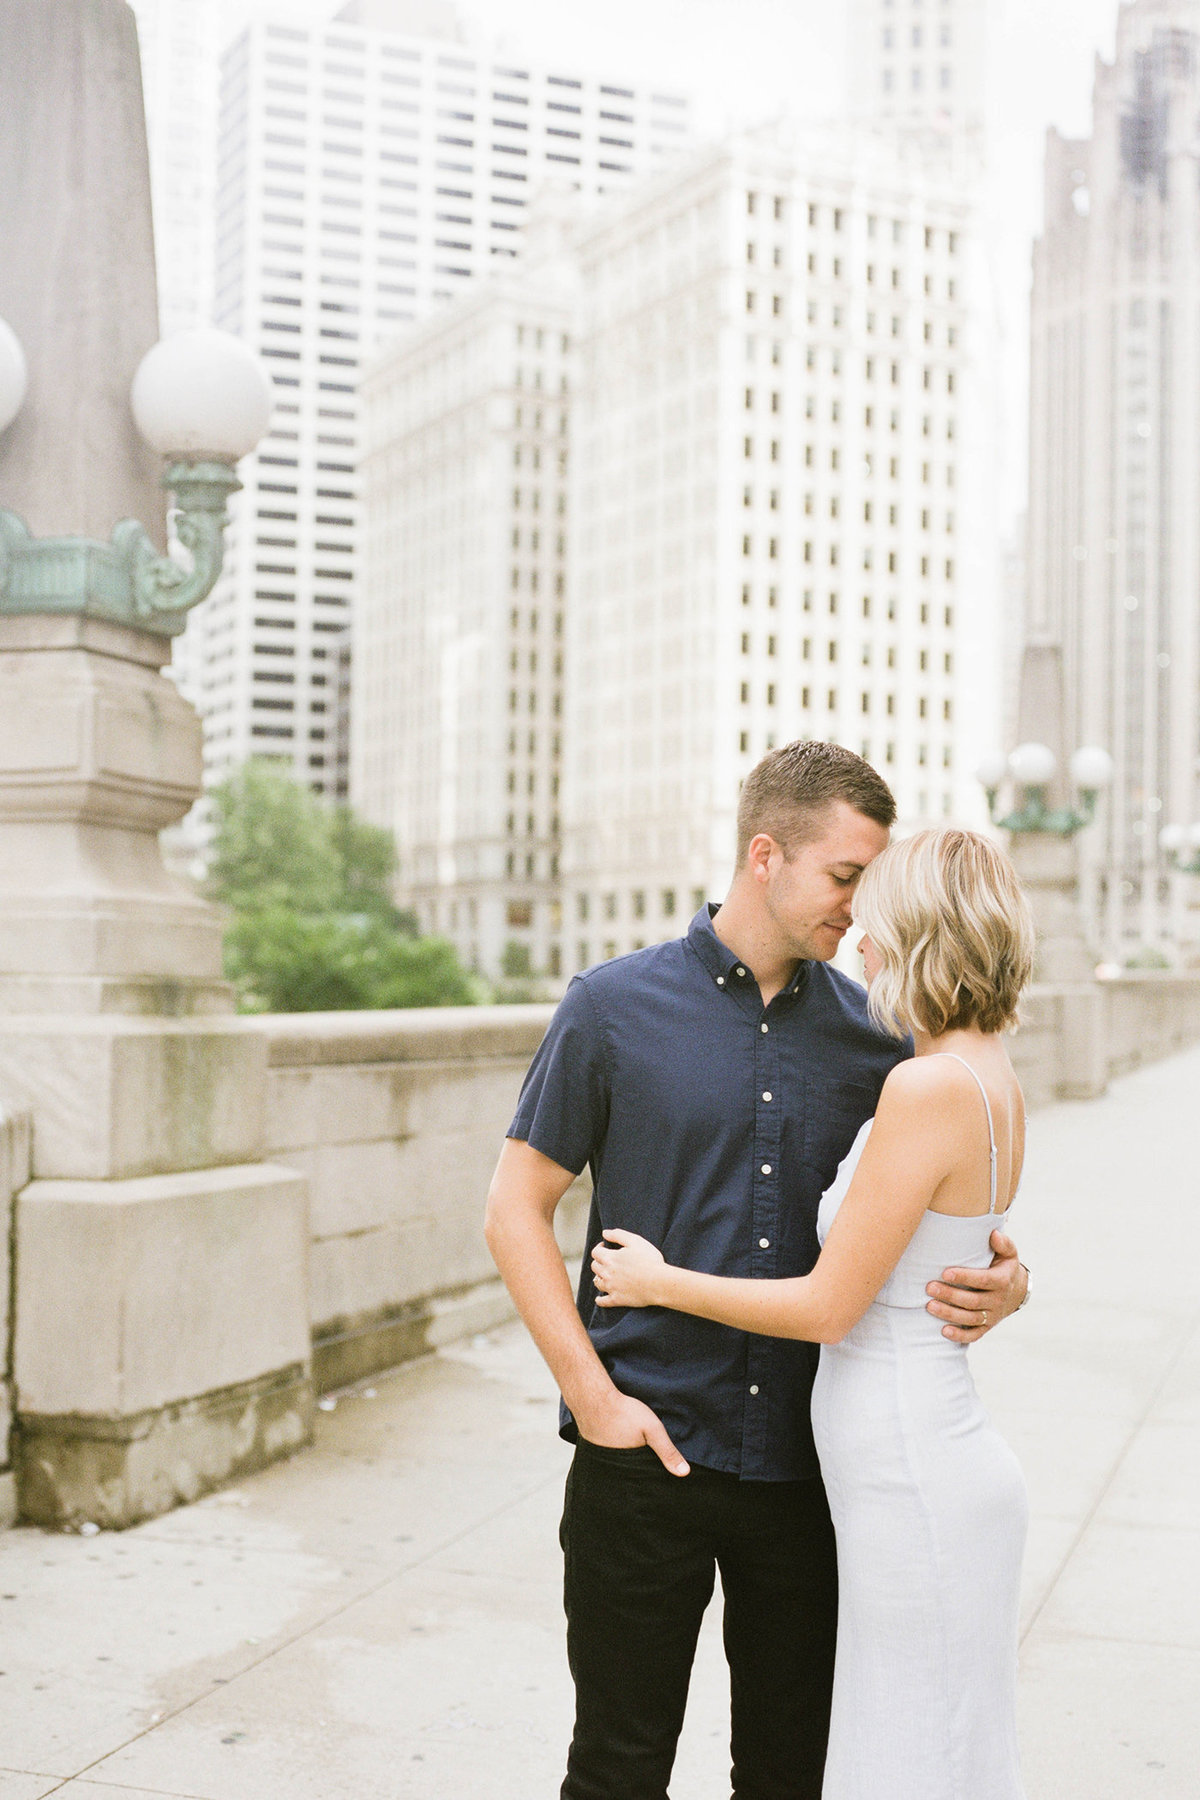 Chicago Wedding Photographer - Fine Art Film Photographer - Sarah Sunstrom - Sam + Morgan - Engagement Session - 3